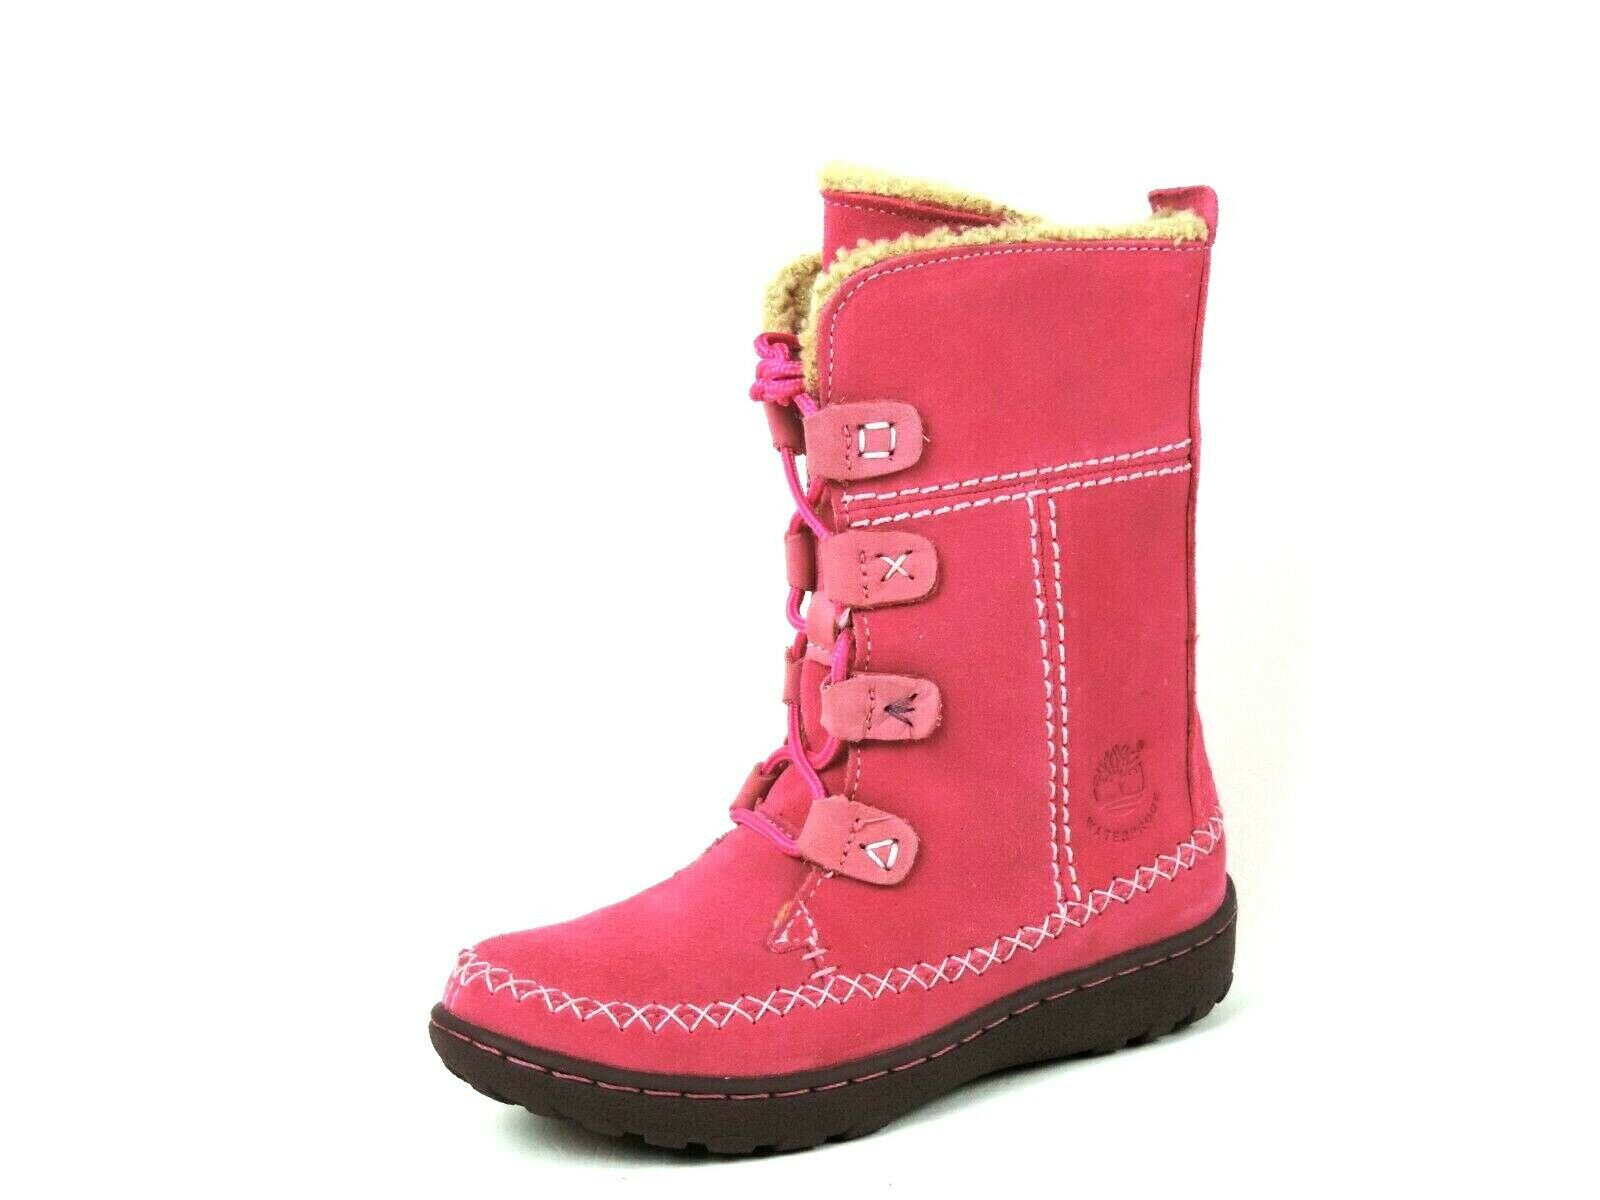 Timberland Oslo Expres Fauna Leather Pink 50731 Winter Girls Boots Snow Rare DS